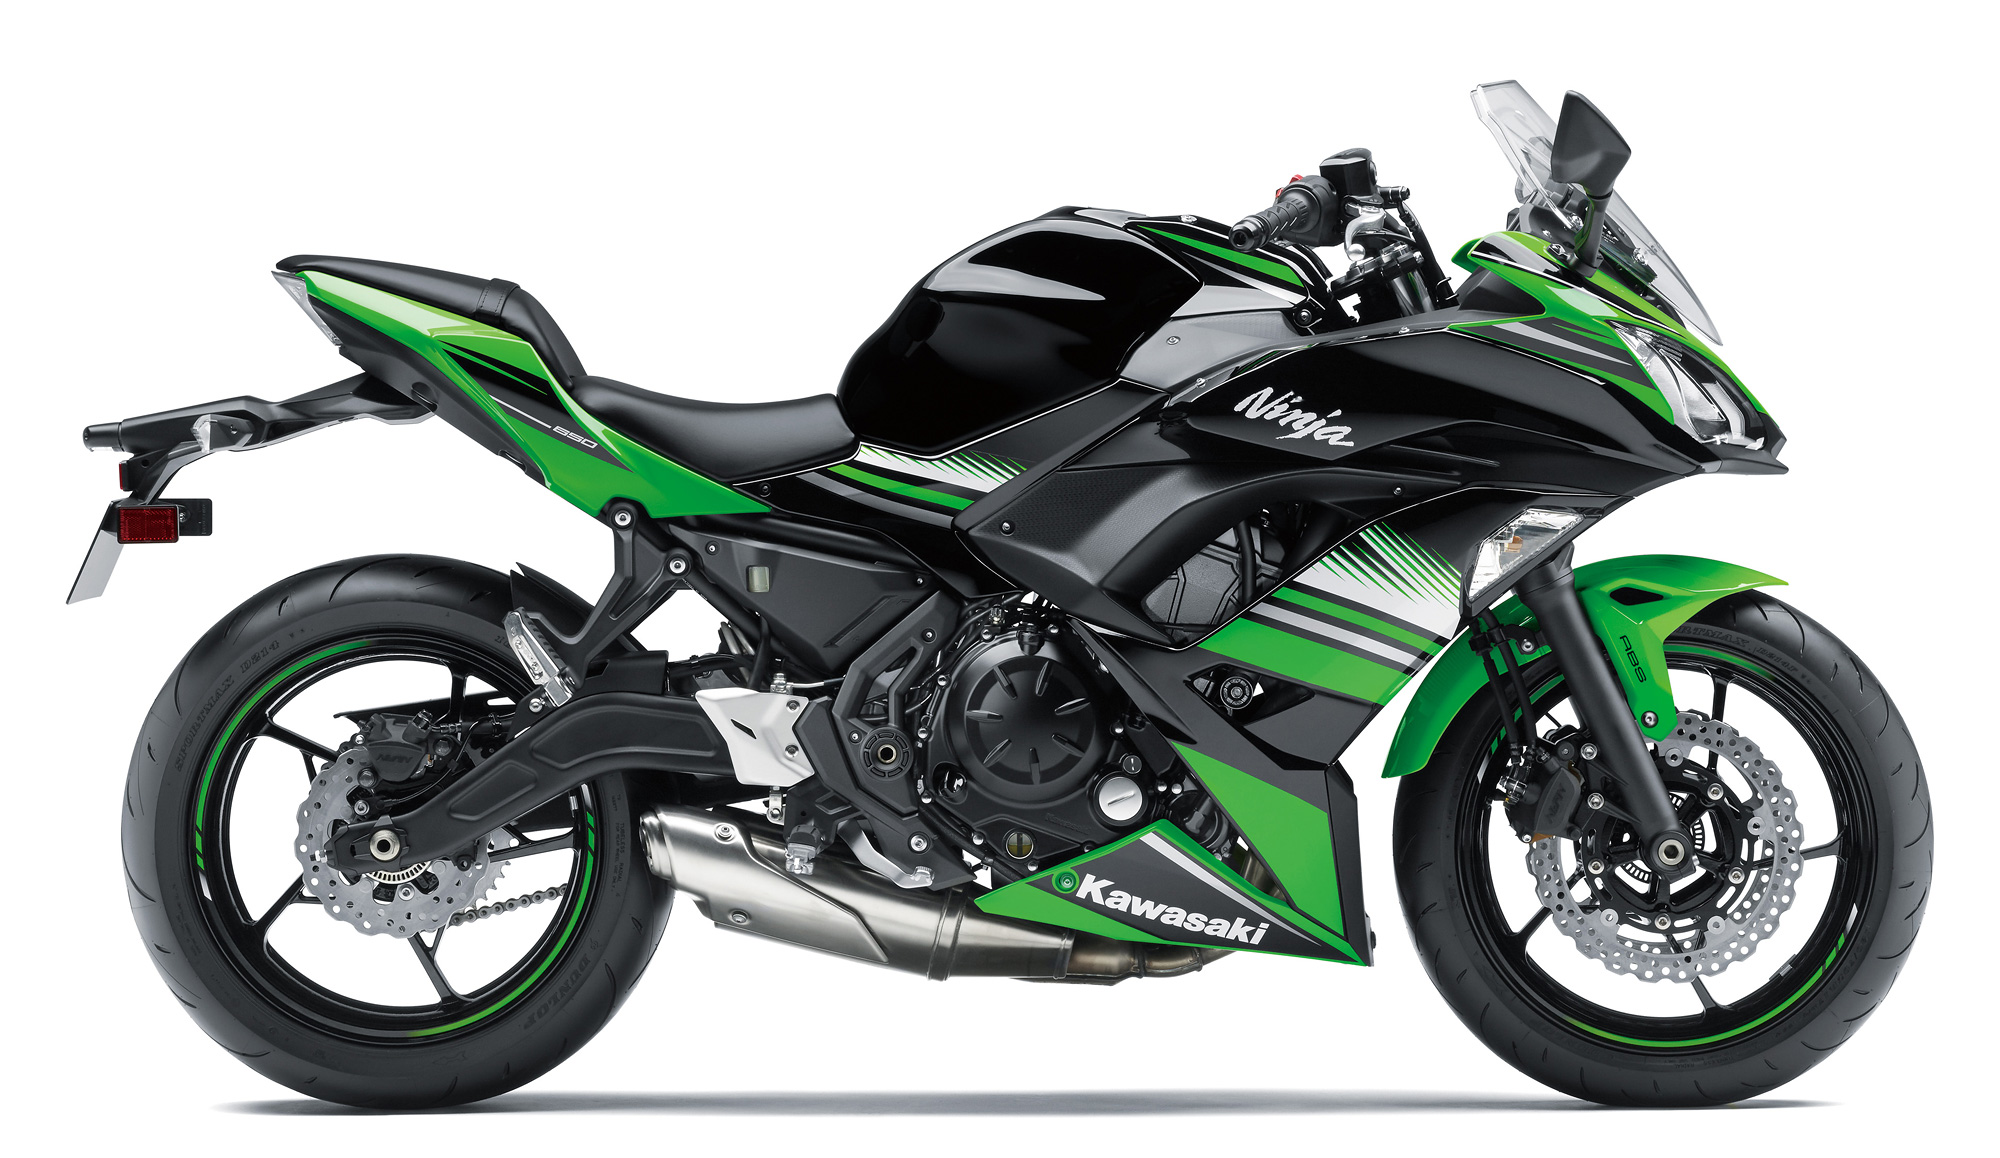 kawasaki 650 series top 10 reasons it s the favourite middleweight rh bikesrepublic com 2009 ninja 650r owners manual 2009 ninja 650r service manual pdf